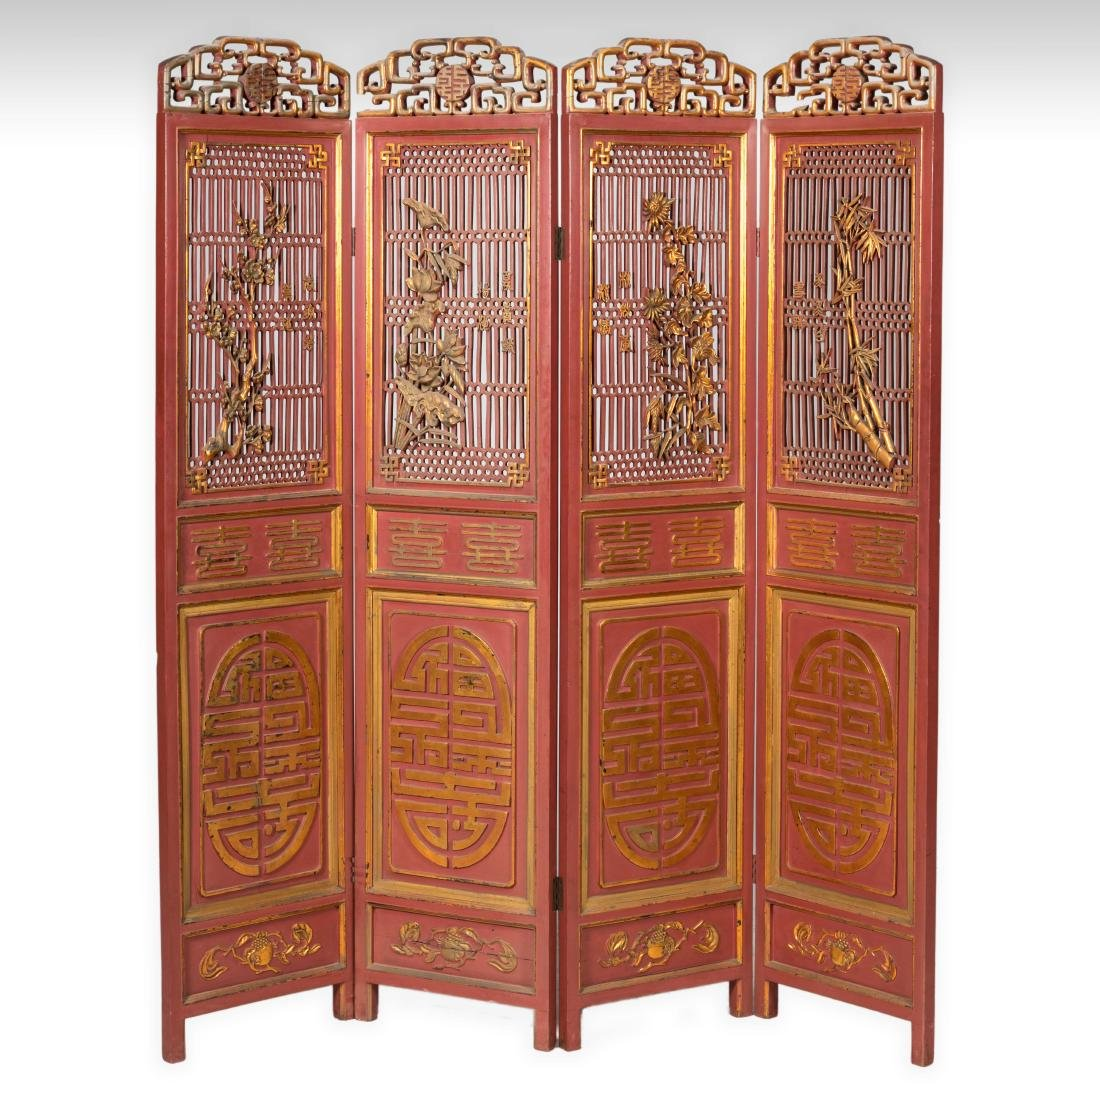 Four Panel Japanese Giltwood Screen